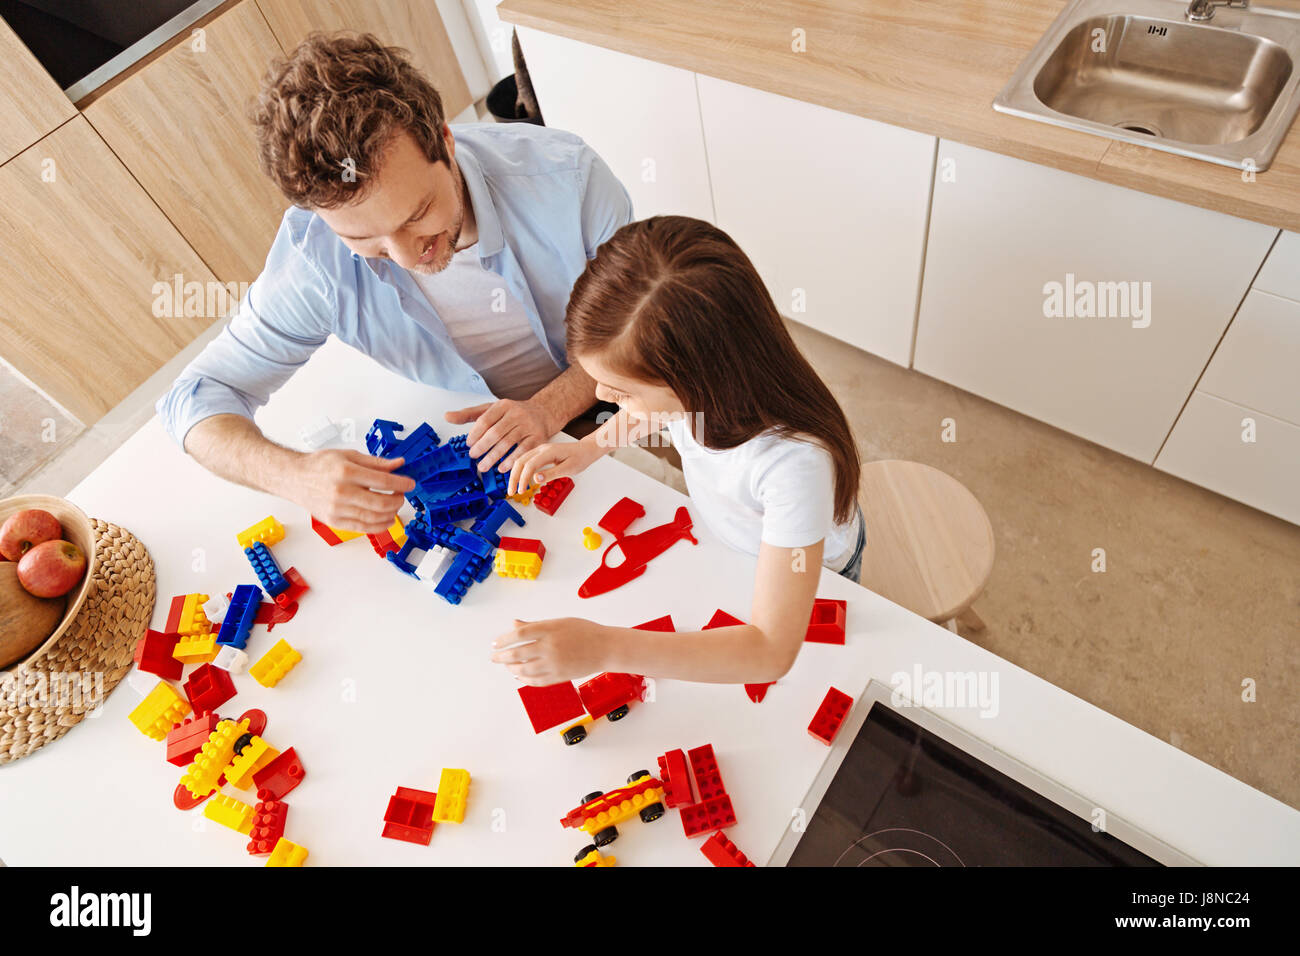 In full swing. Upbeat smiling father and his little daughter being totally engaged in playing together, assembling - Stock Image